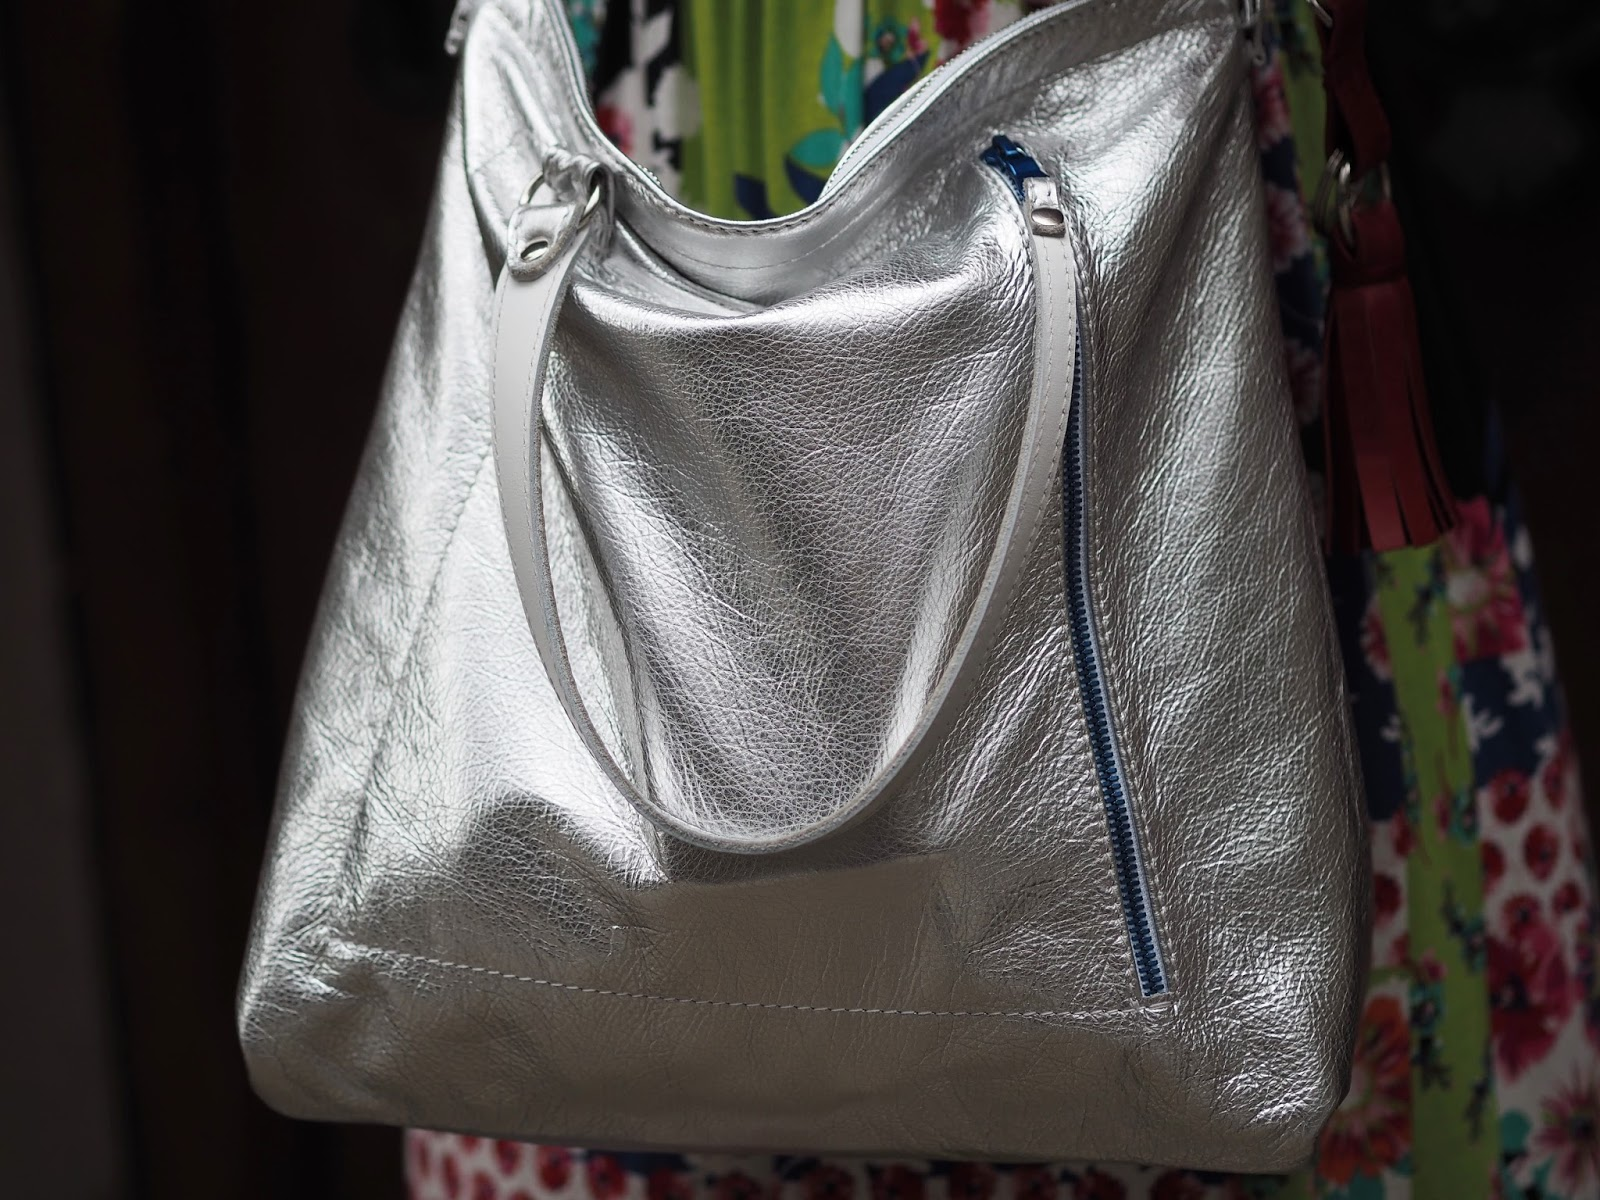 Silver leather tote bag with red zip and blue zip